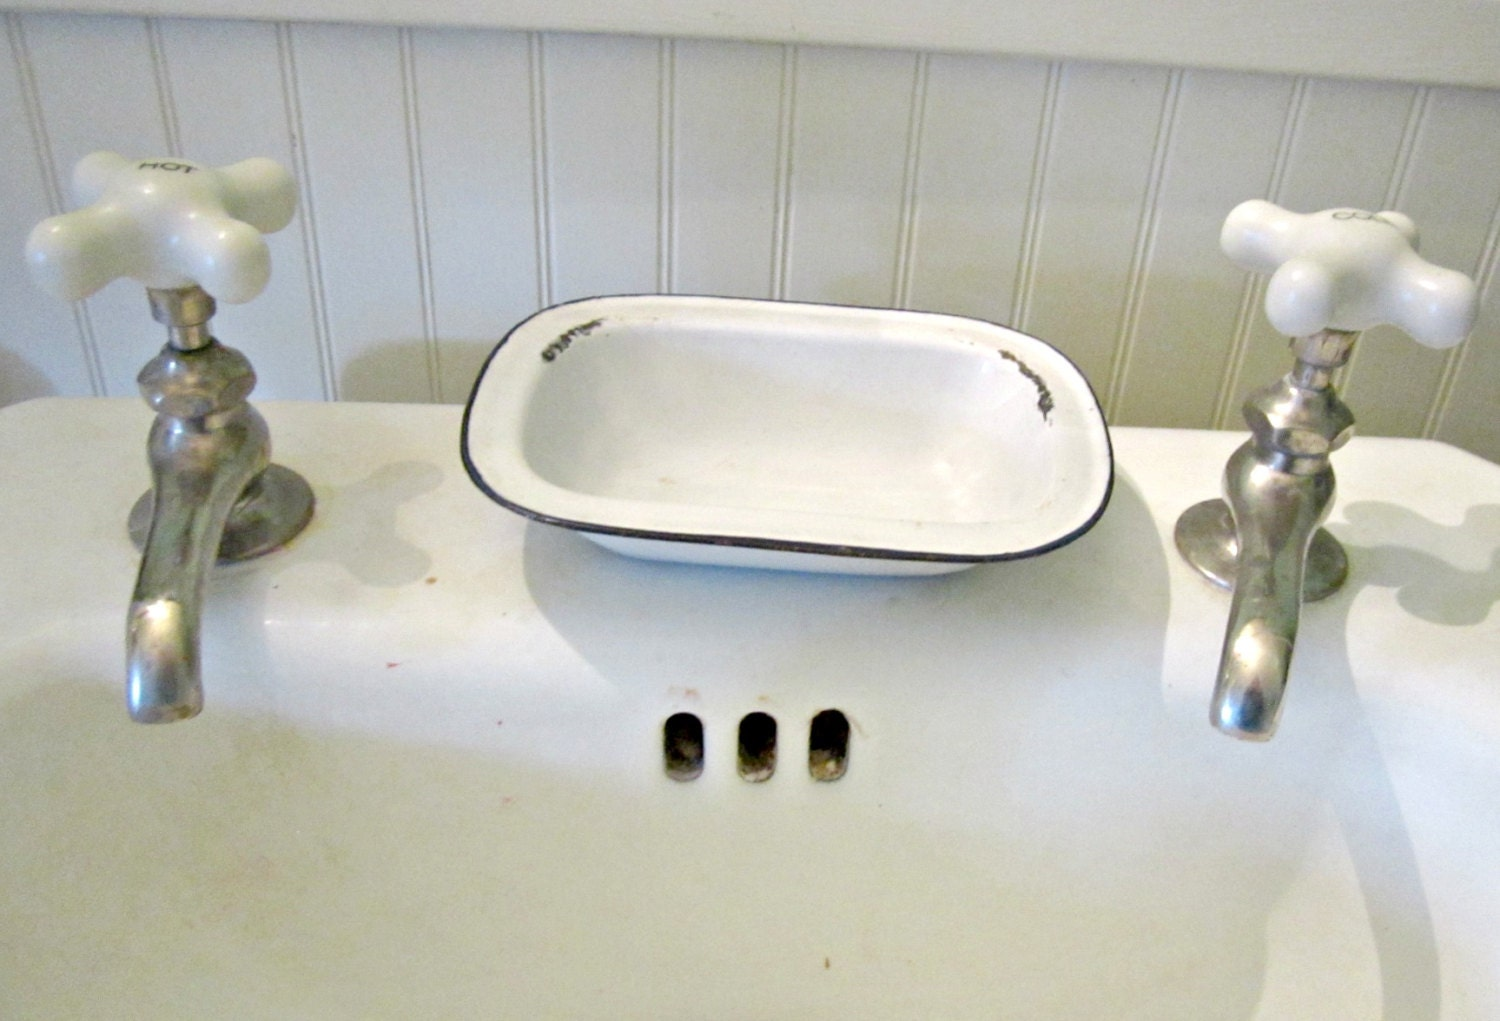 Antique White Enamel Soap Dish Bathroom Or Kitchen Home Decor